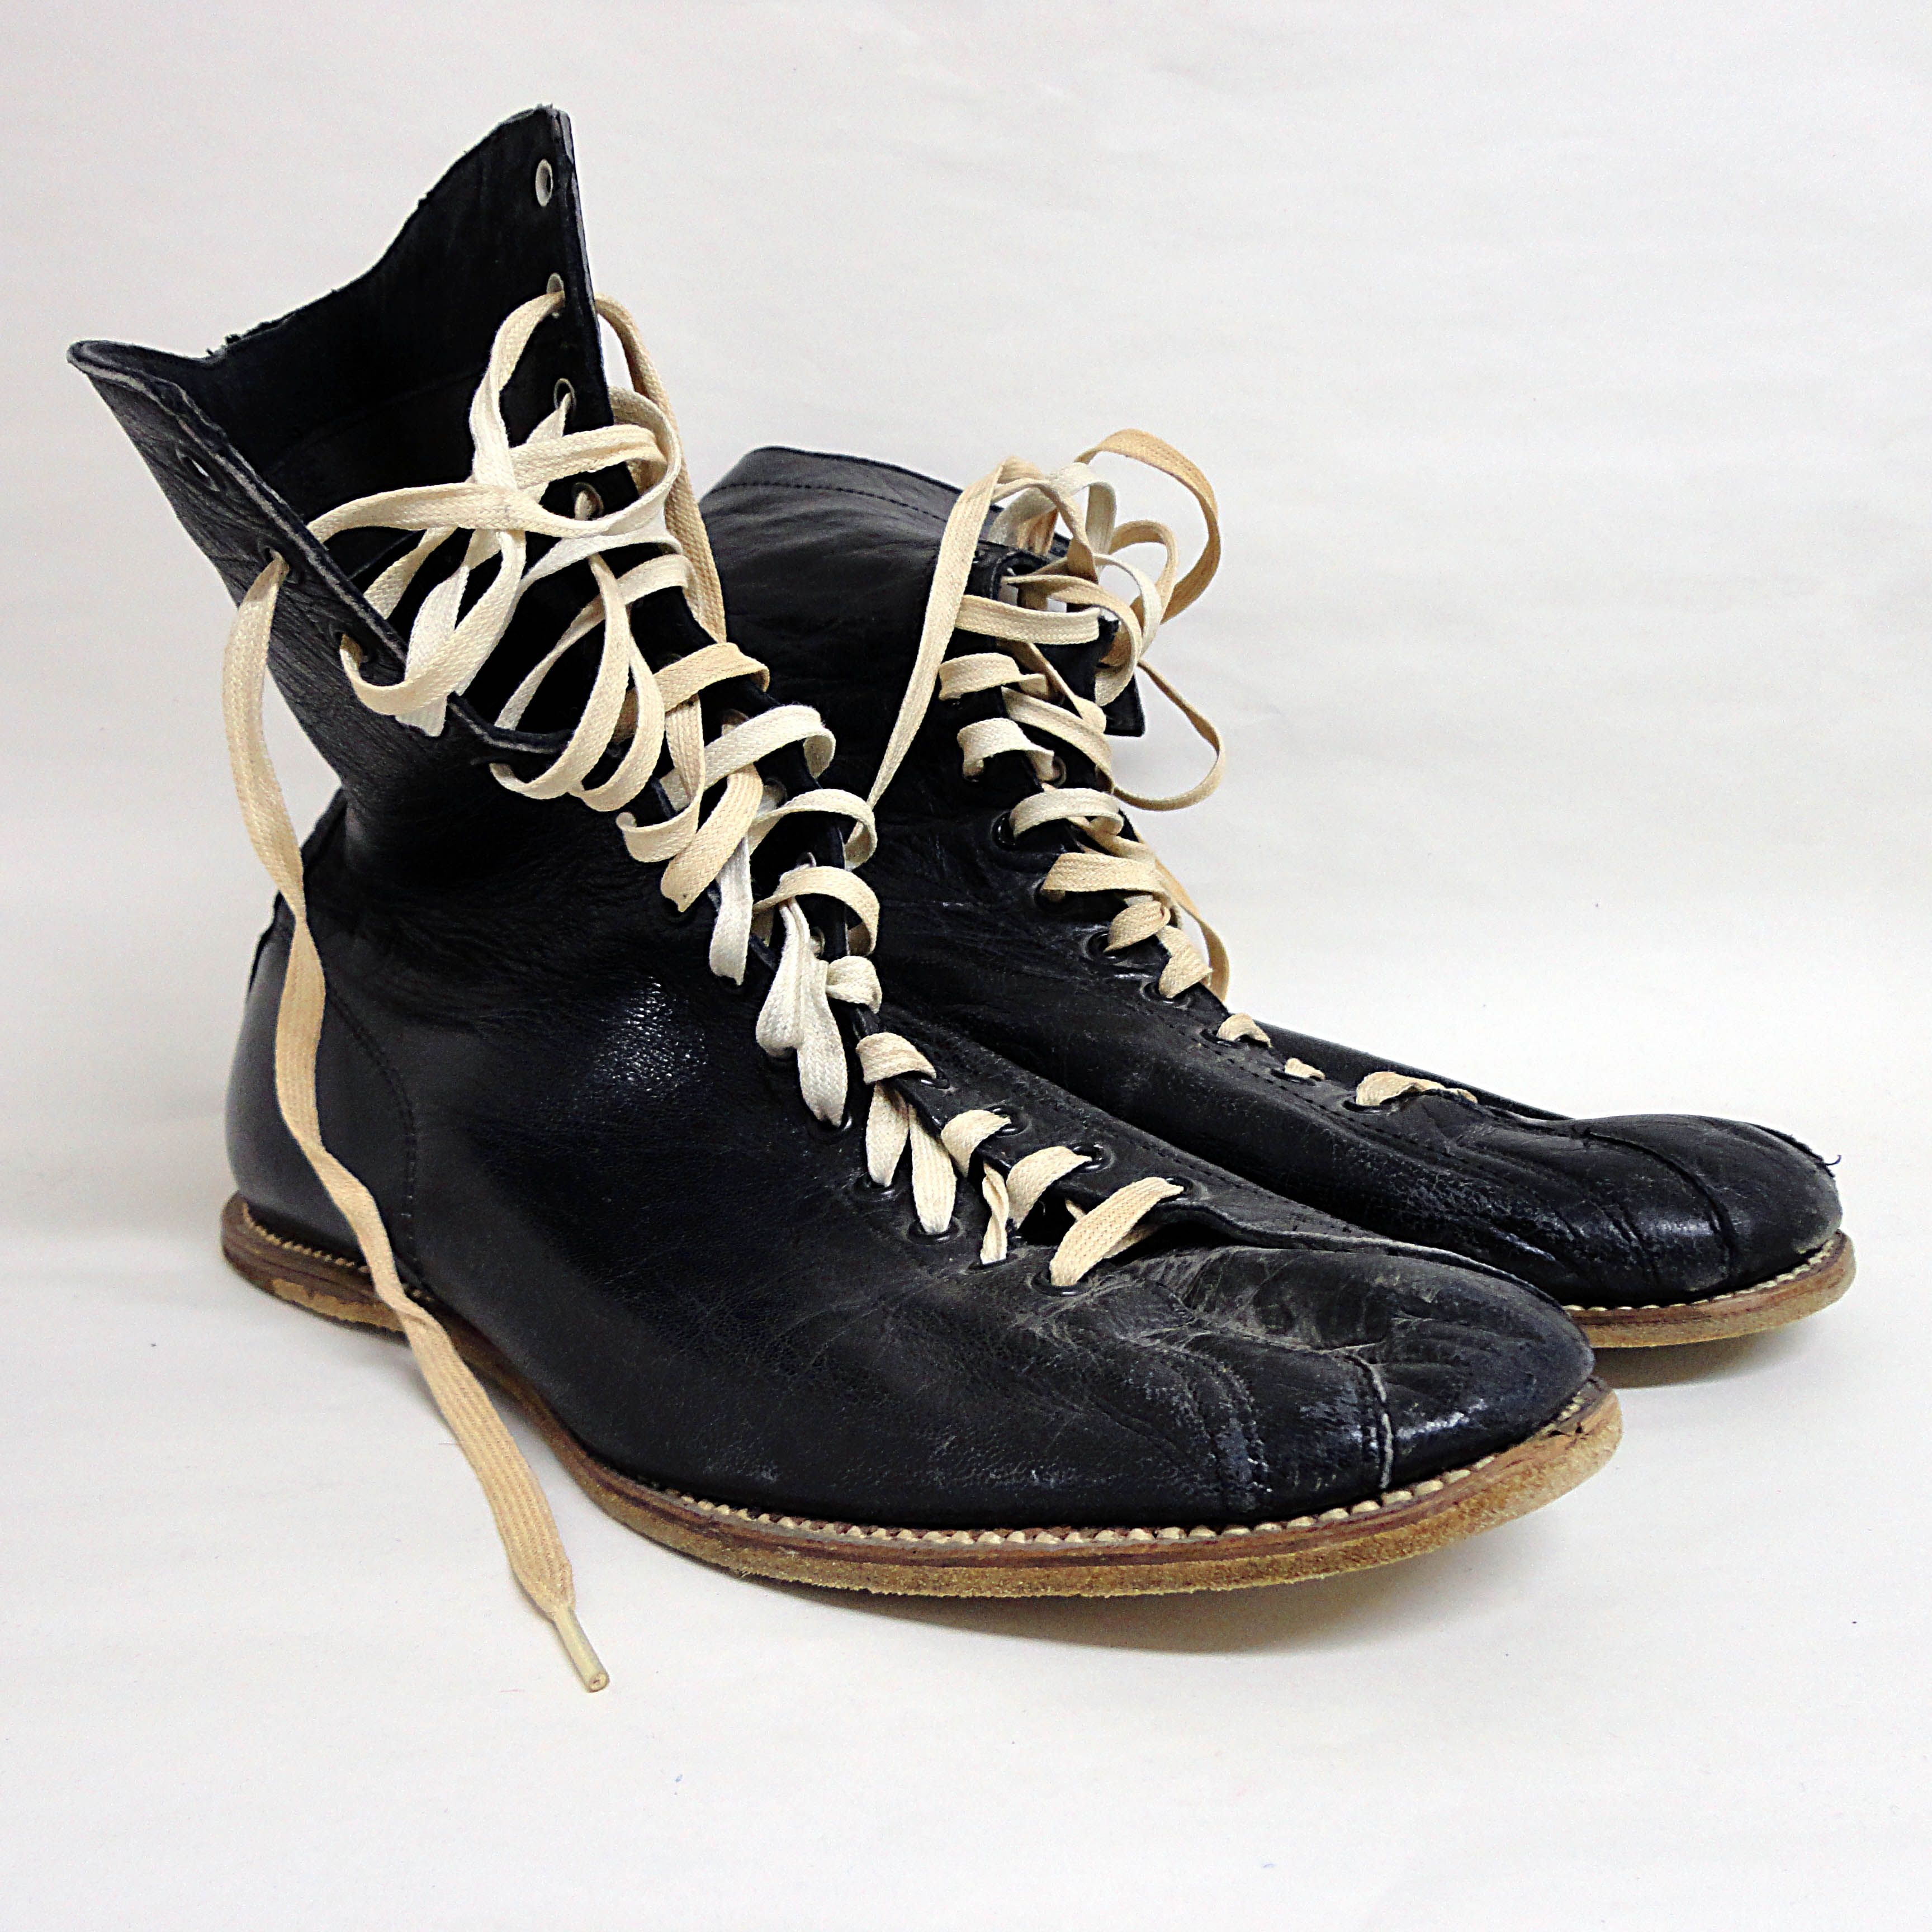 Vintage Boxing Gear Google Search Boxing Boys Boxing Boots